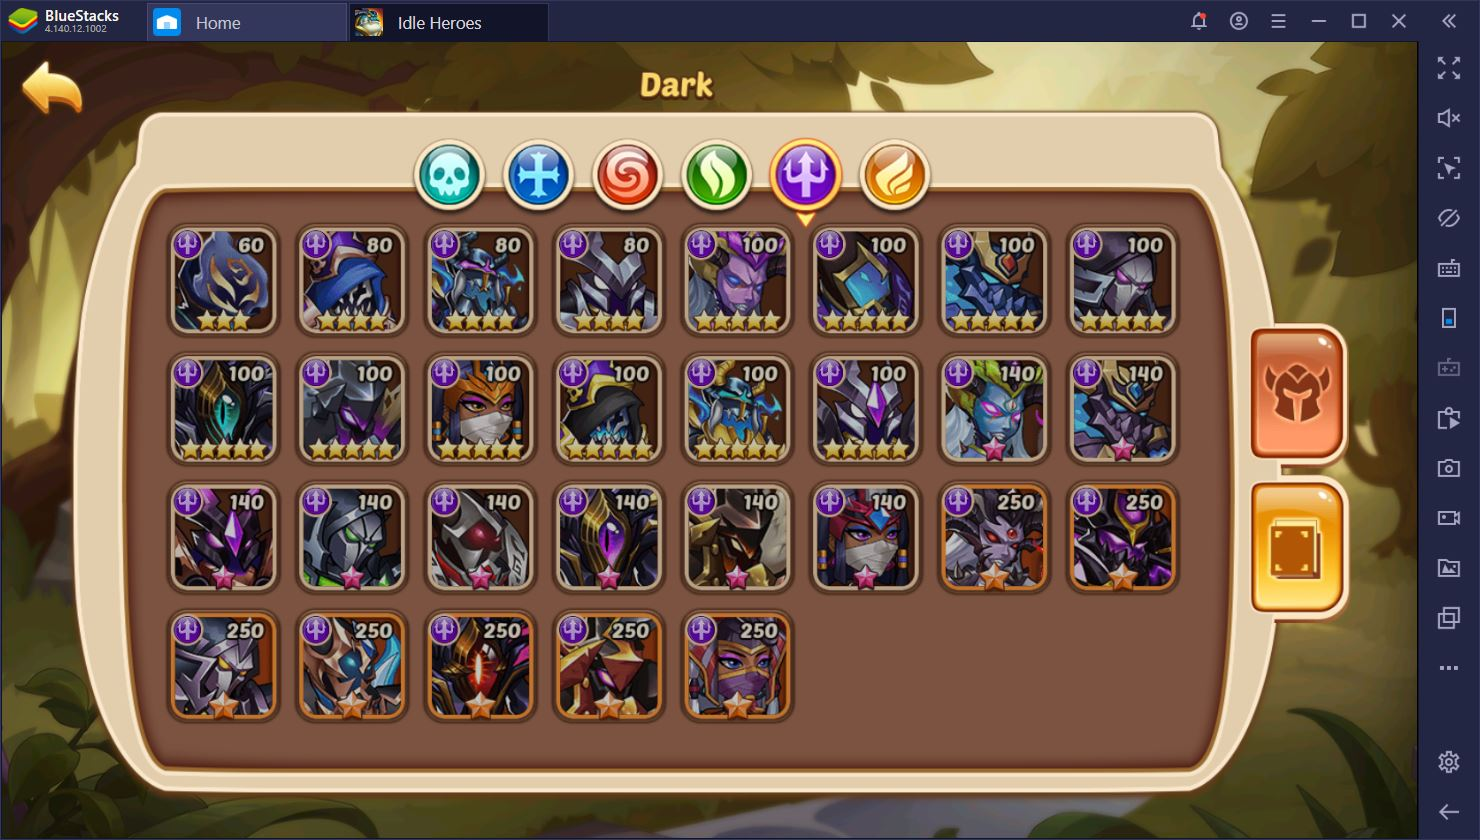 Idle Heroes on PC: The Ultimate Early and Mid-Game Guide